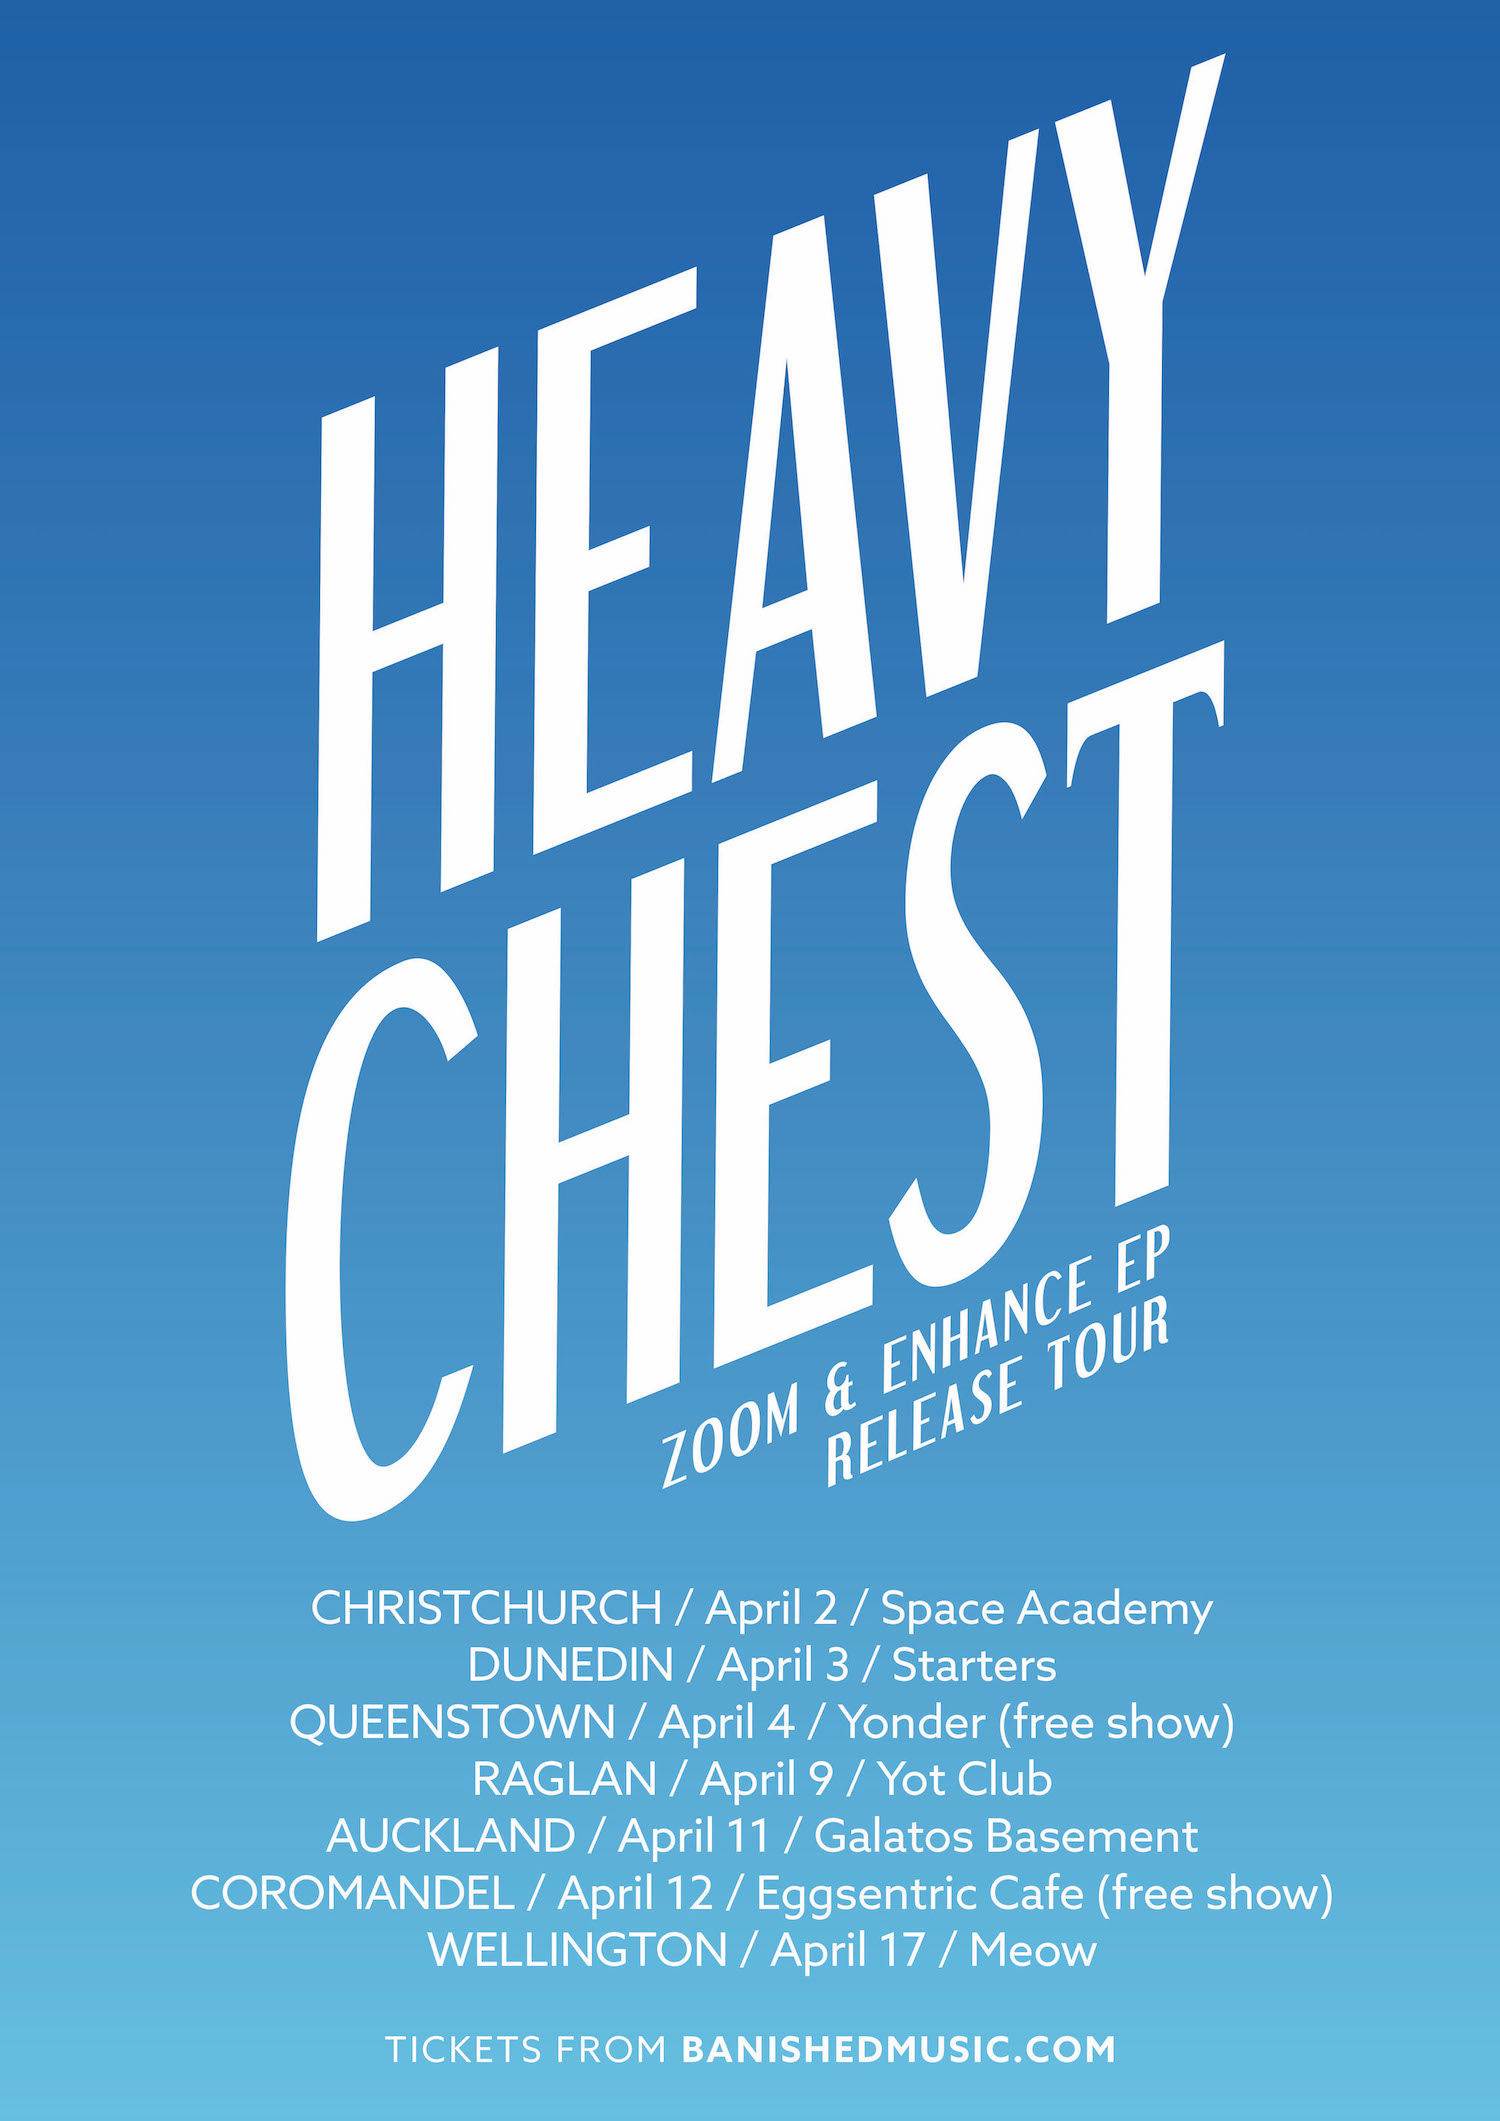 Heavy Chest , Zoom & Enhance EP release tour - Christchurch - Postponed - Space Academy , Christchurch